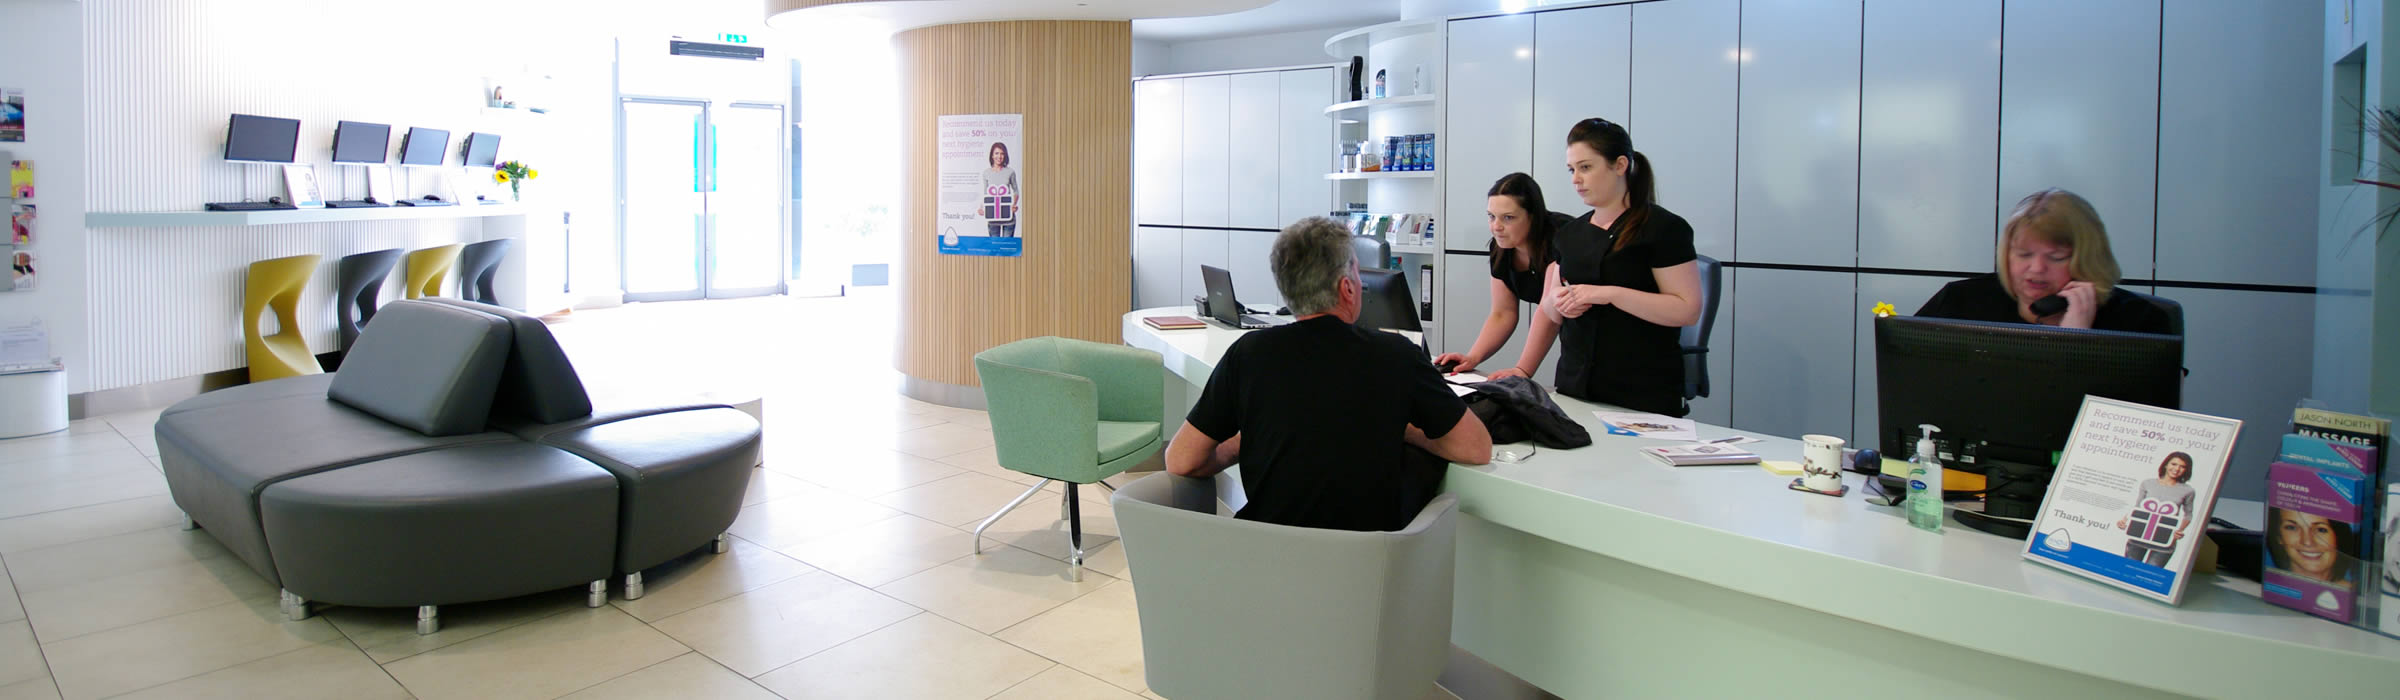 Senova Dental Studios Waiting Area